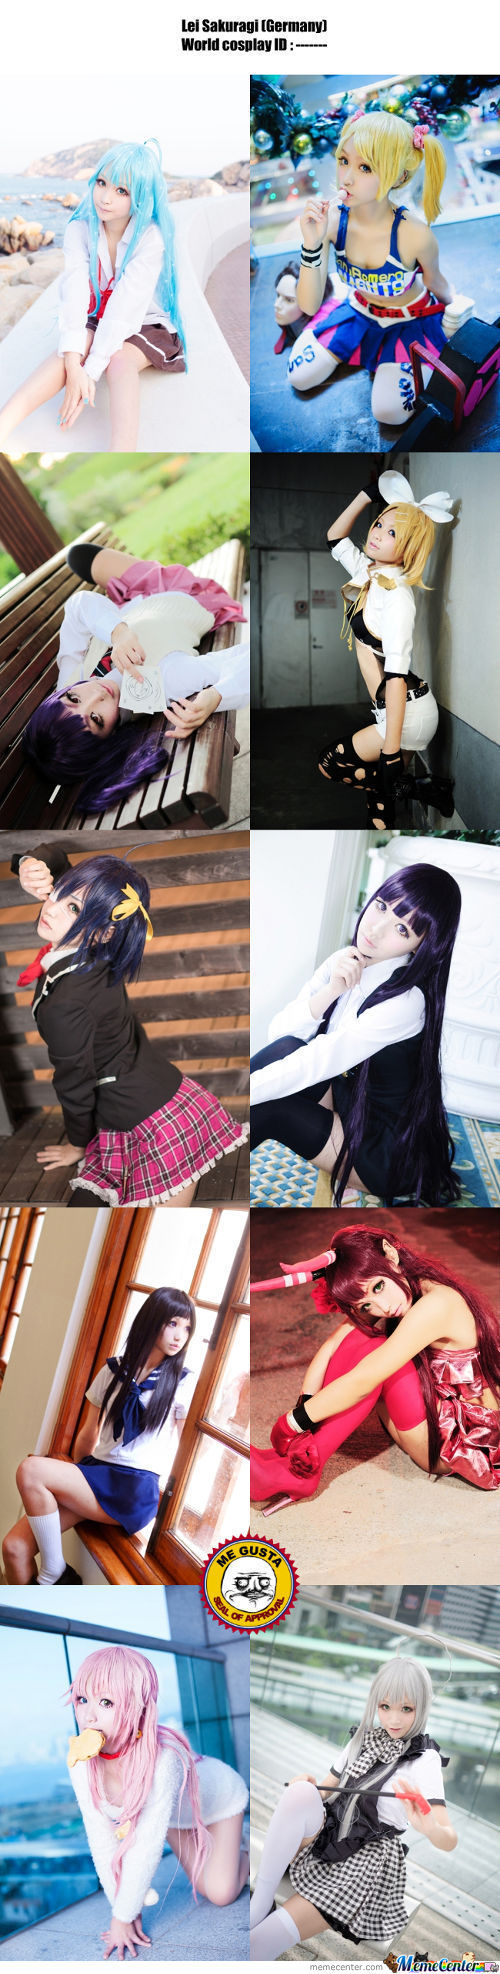 Cosplay Girl : Lei Sakuragi (Germany)